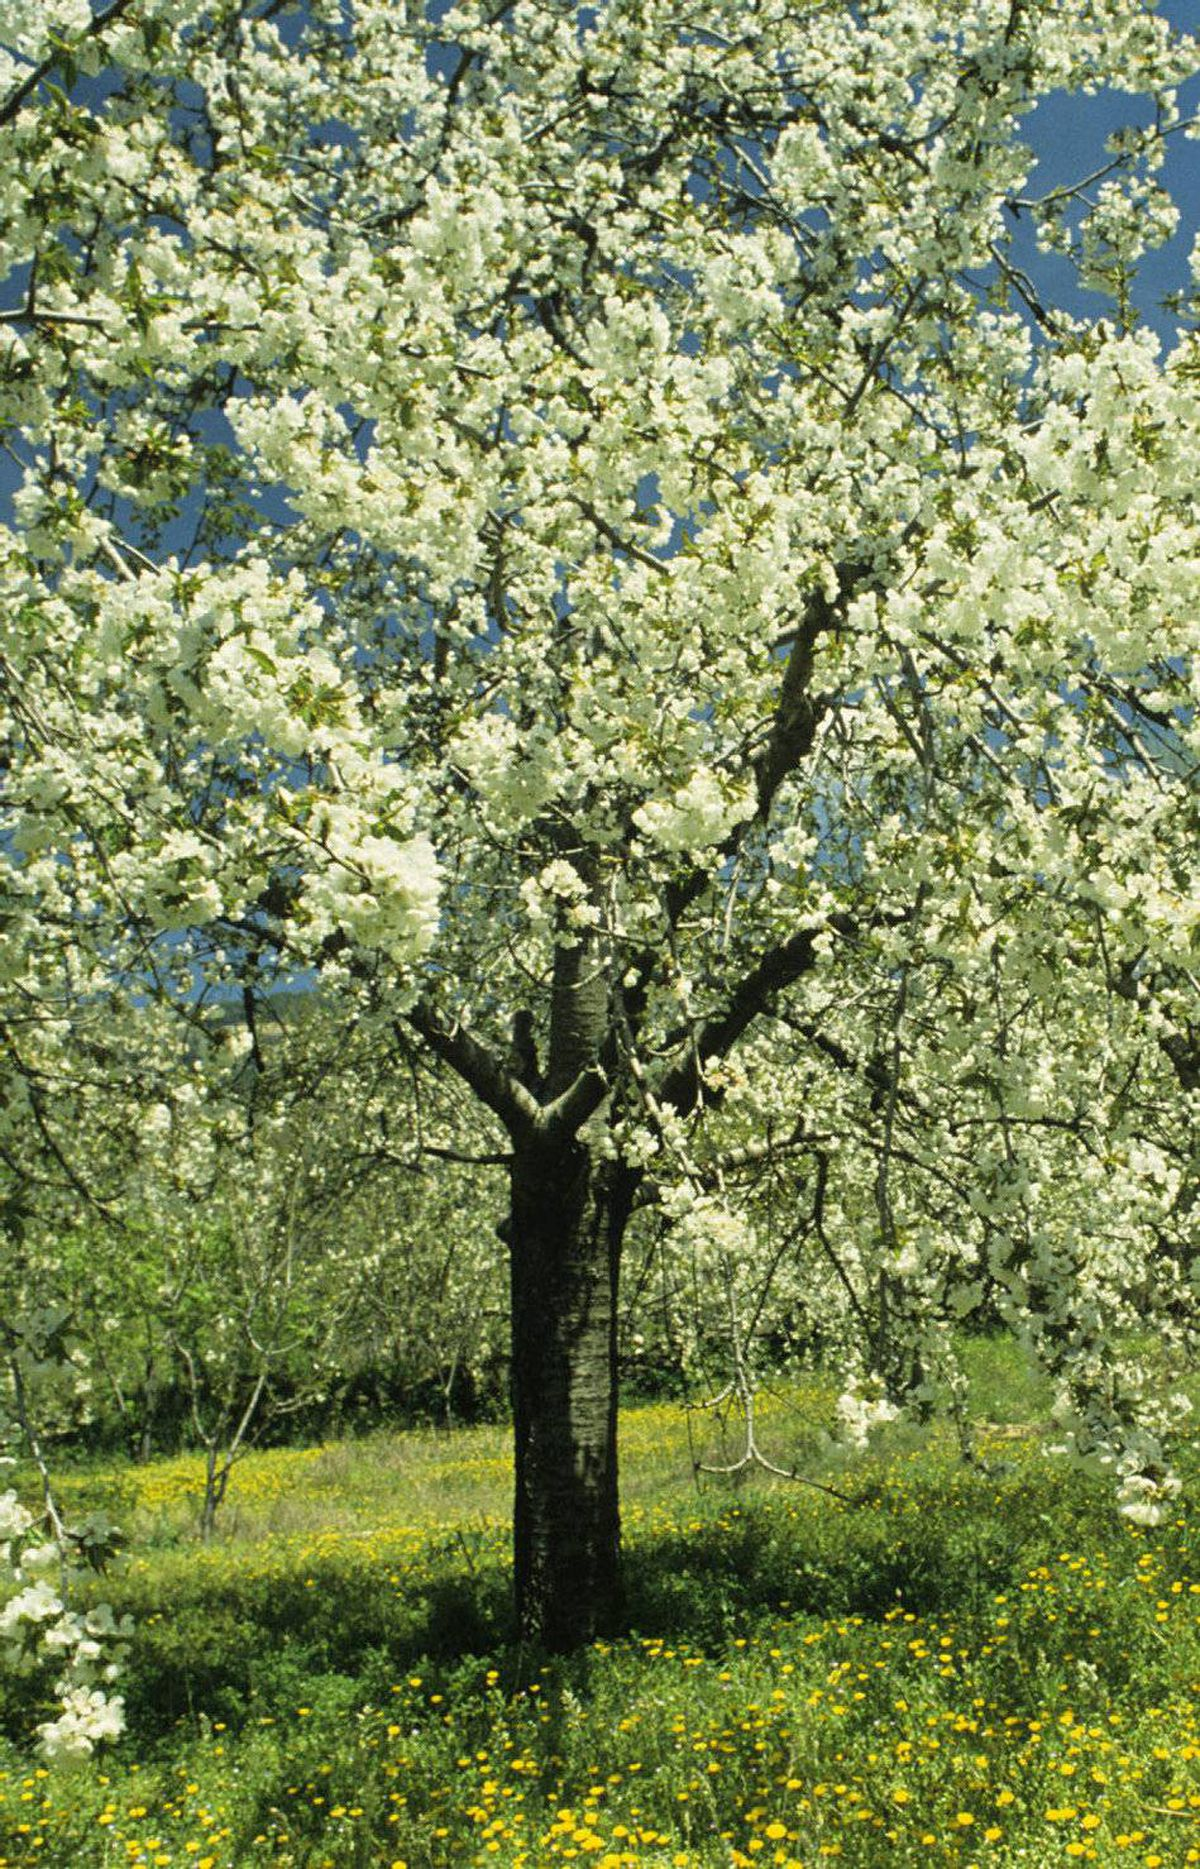 THE FOODIE Cherry tree, $129.99 at Sheridan Nurseries (www.sheridannurseries.com).